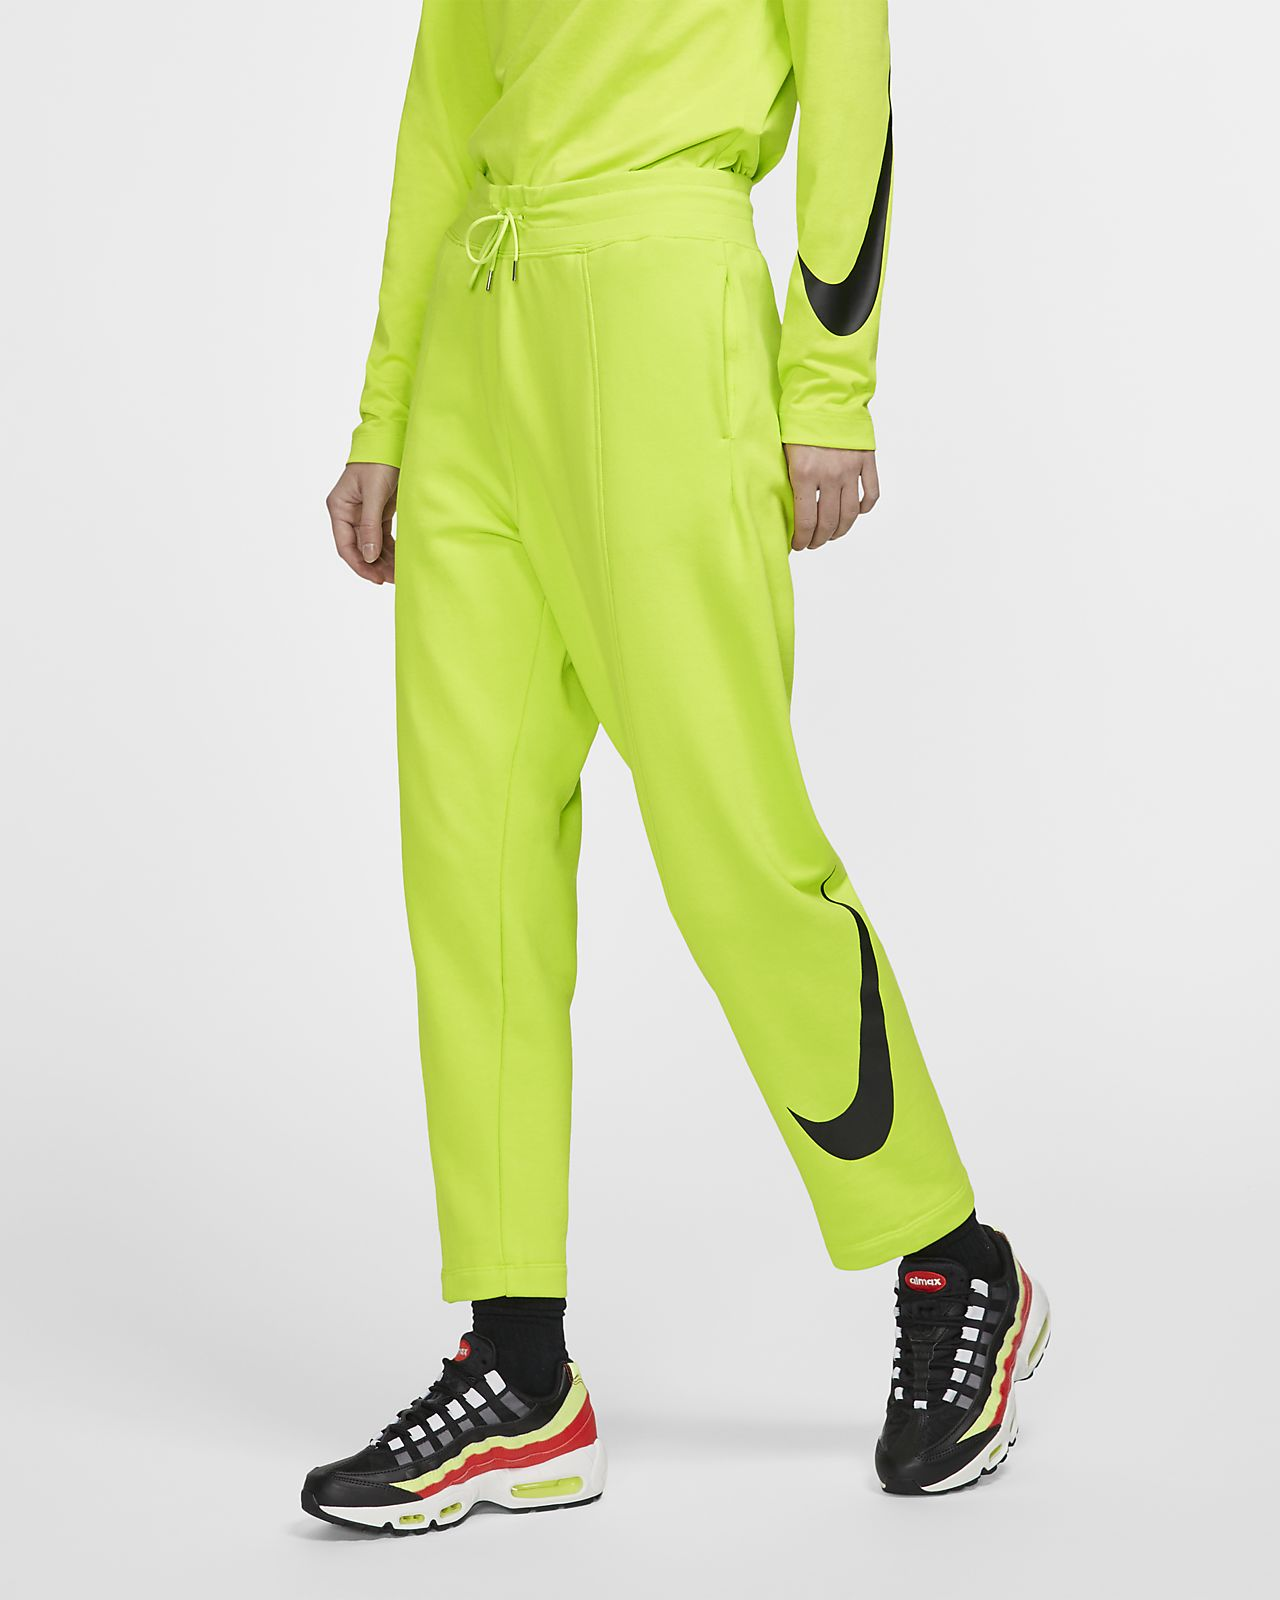 d148e7fcf196 French Terry Trousers. Nike Sportswear Swoosh